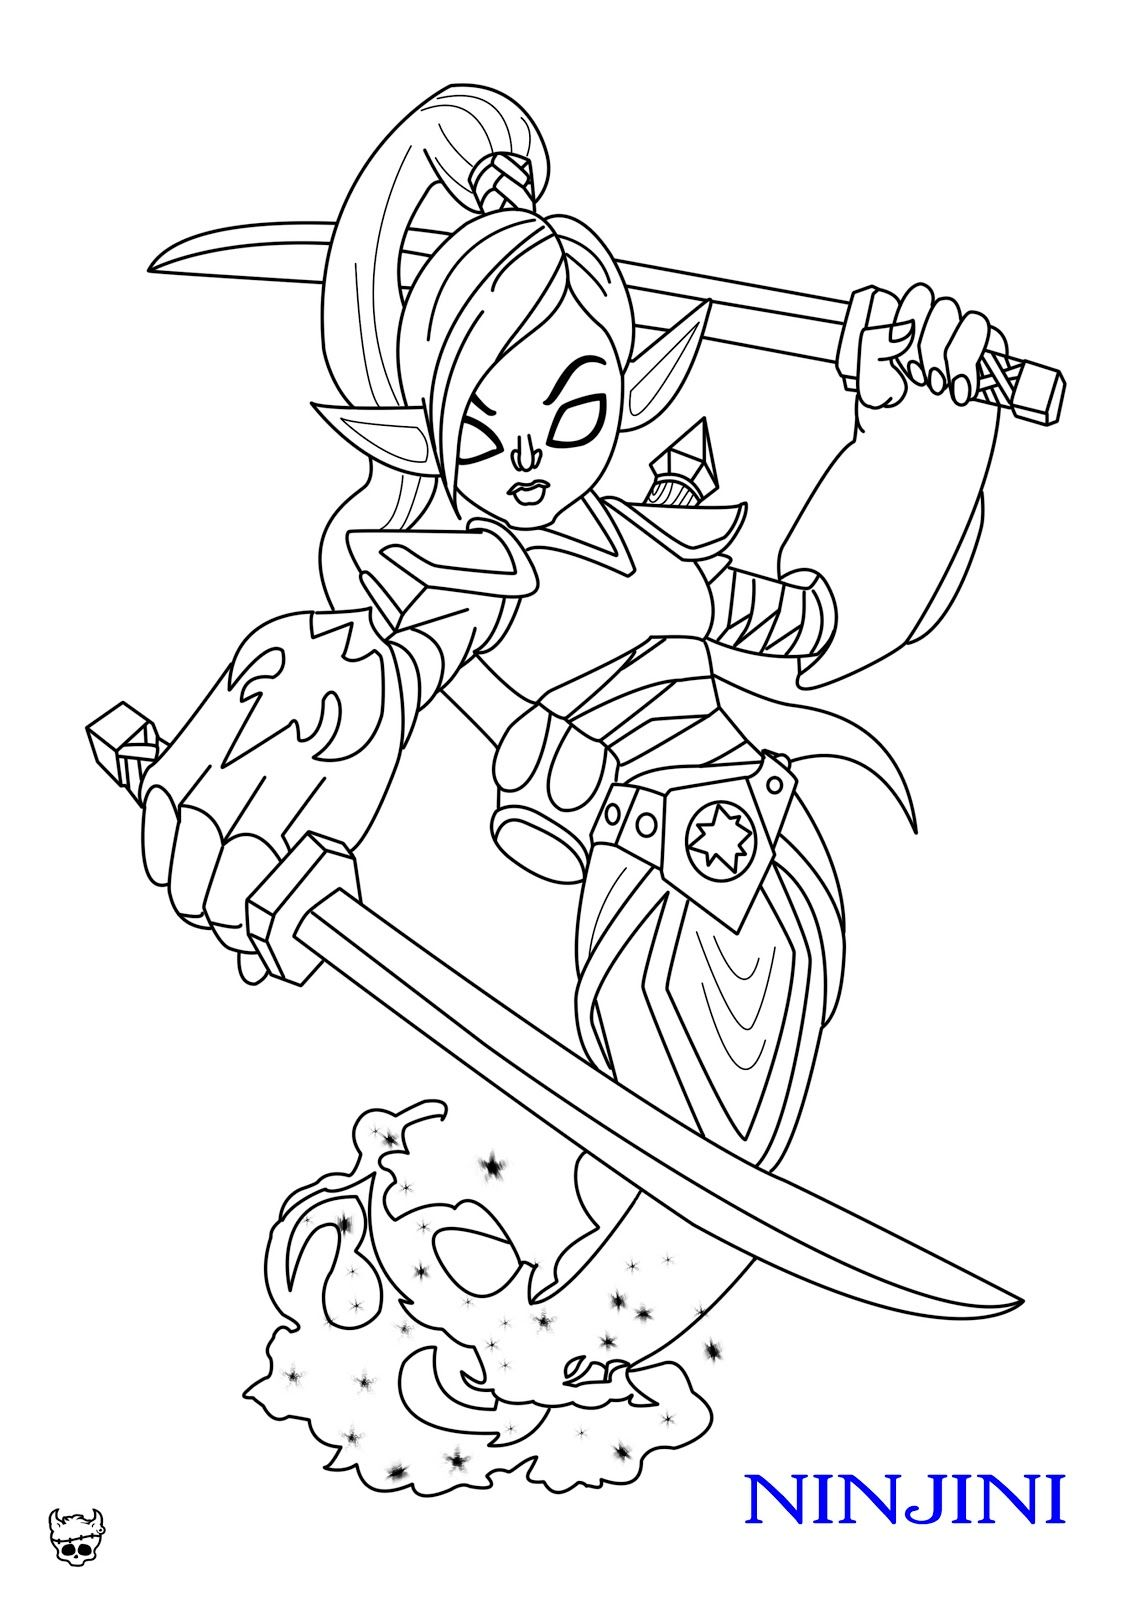 Free coloring pages for skylanders - Skylanders Giants Pages To Coloring Pictures Coloring Pages Sonic X Skylander Ninjini Coloring Pages